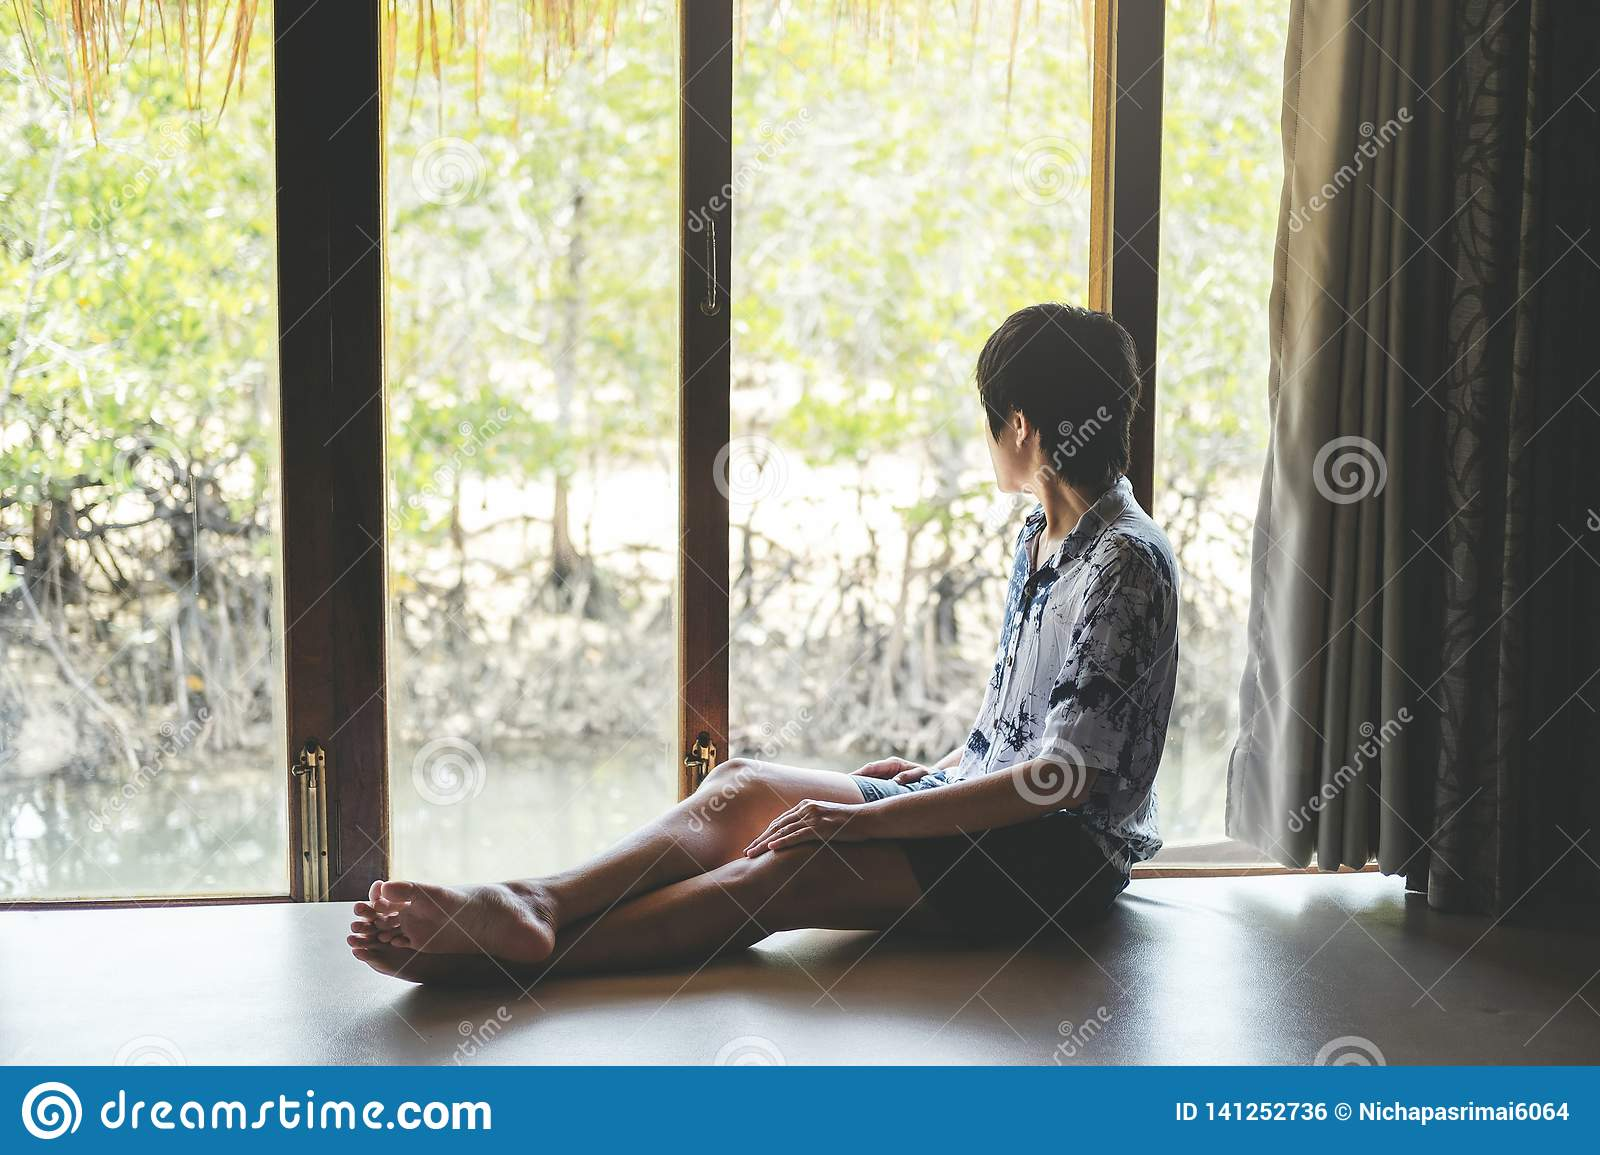 Man relaxing in mangrove forest Lagoon vacation time